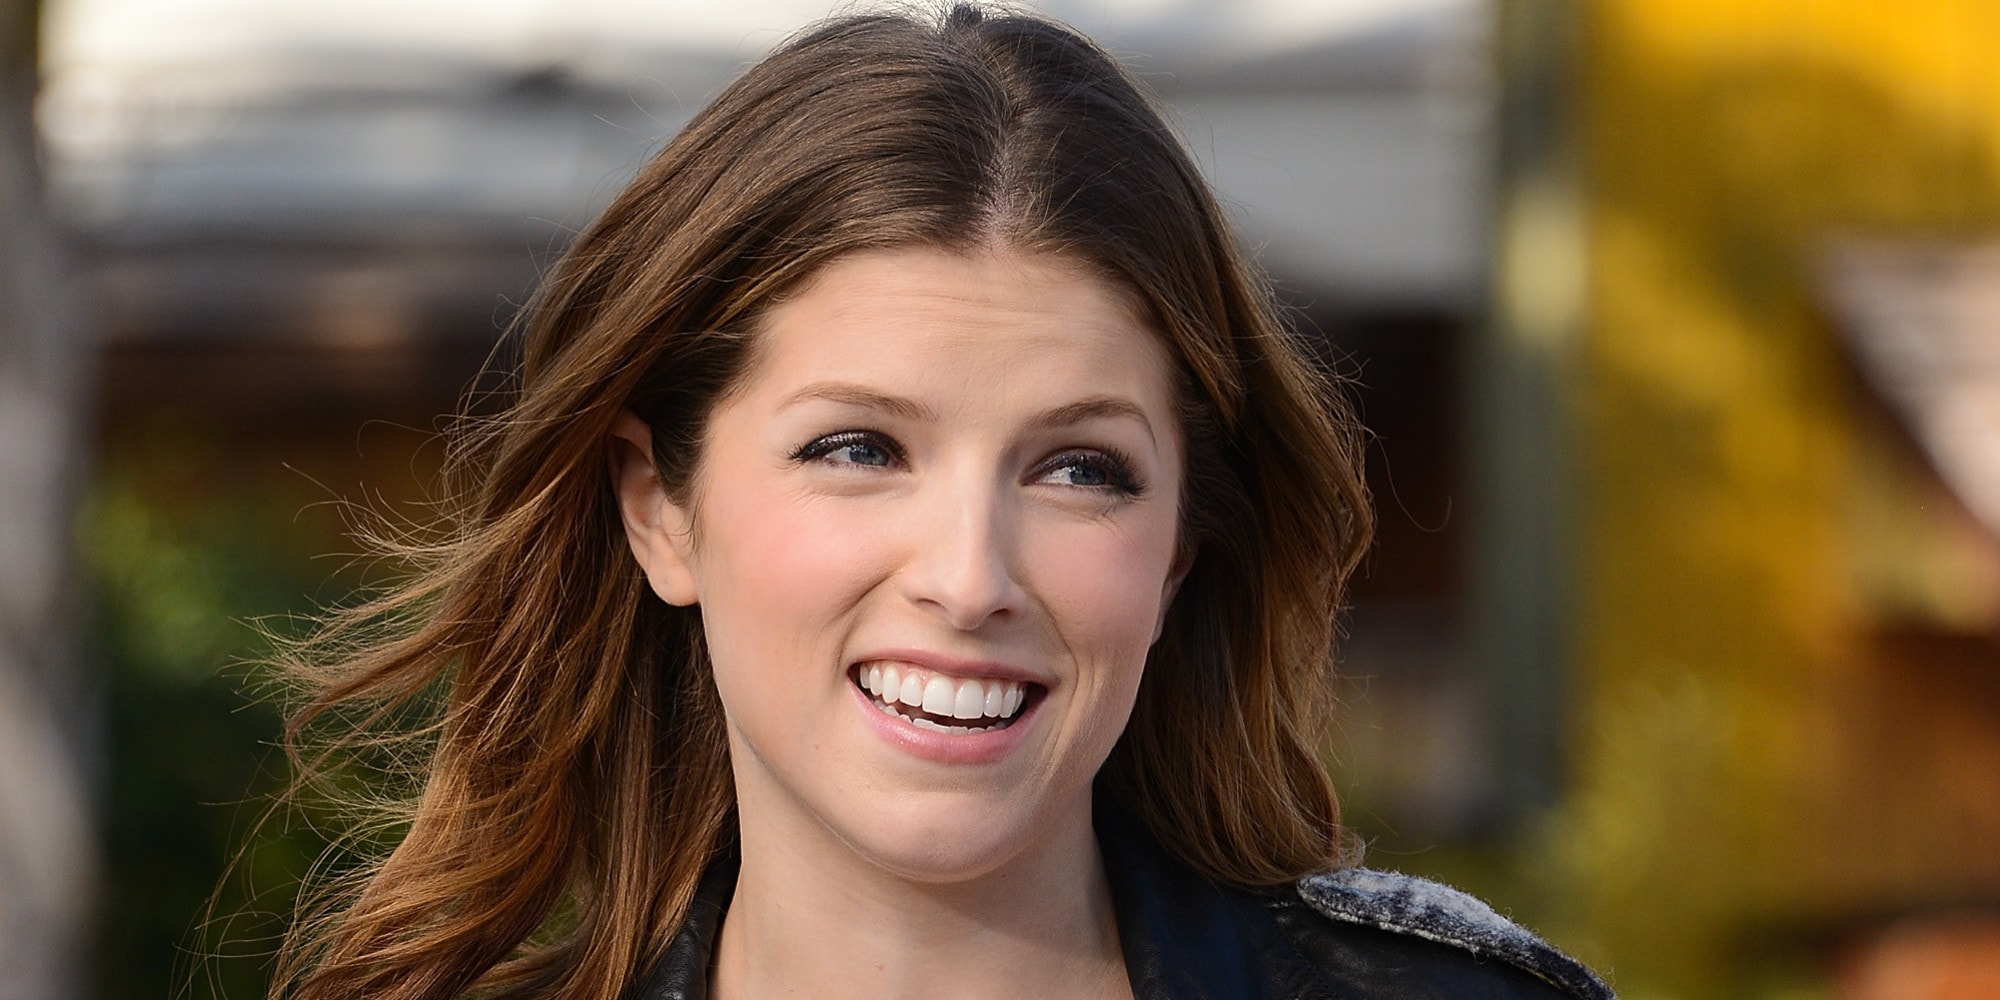 Anna Kendrick Widescreen for desktop